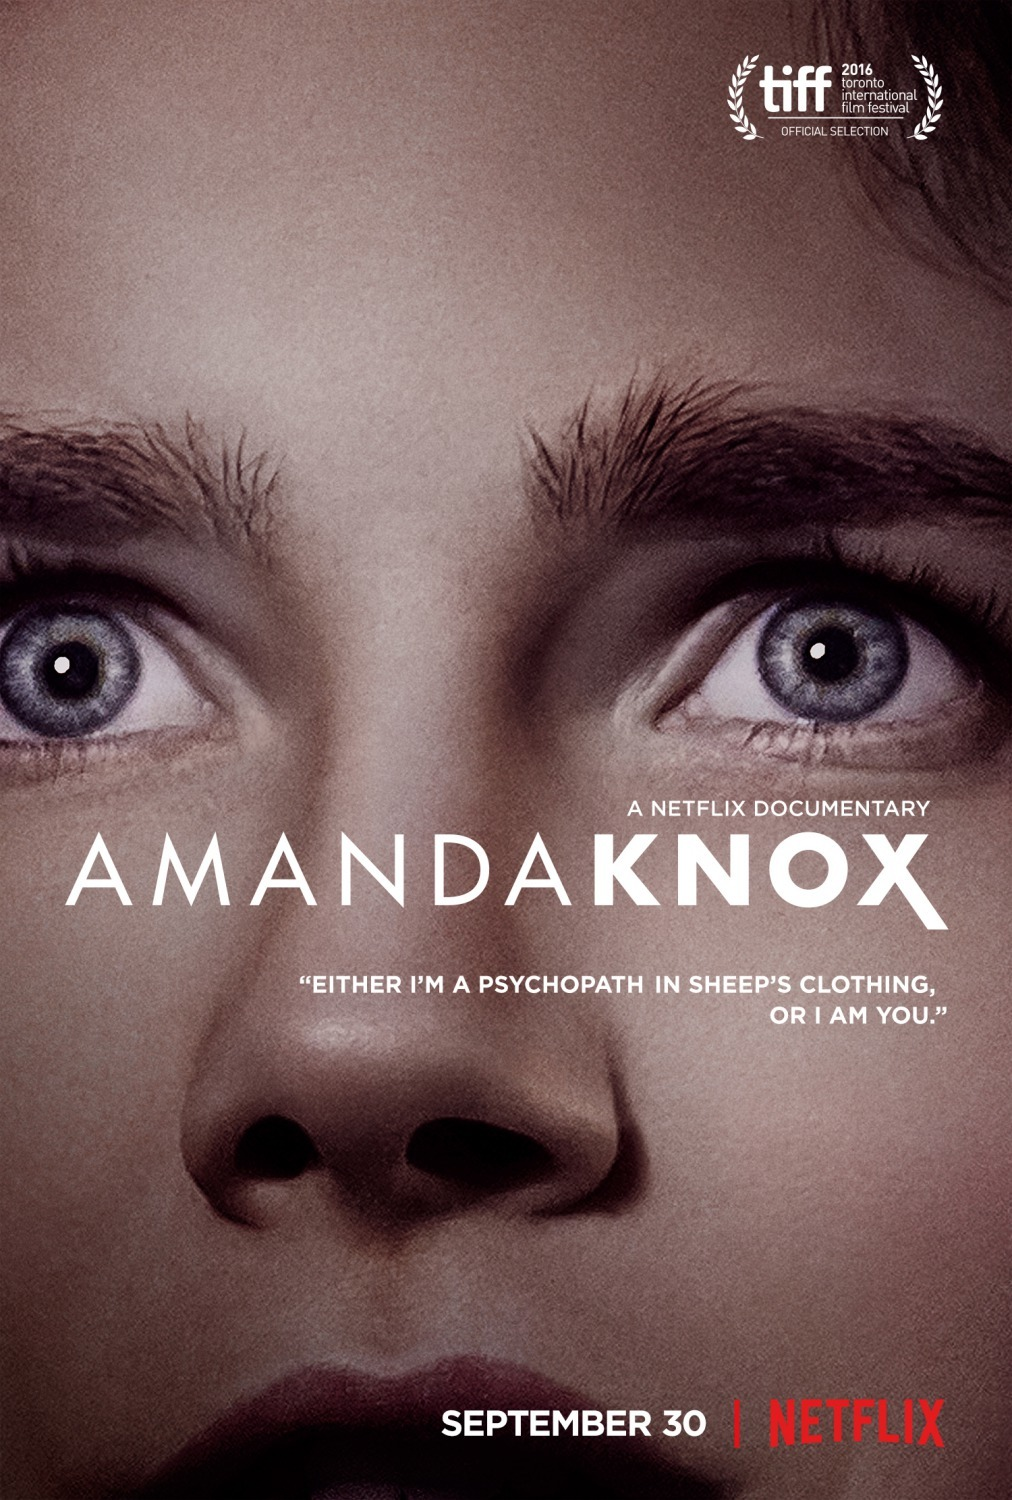 Amanda knox movie online watch picture